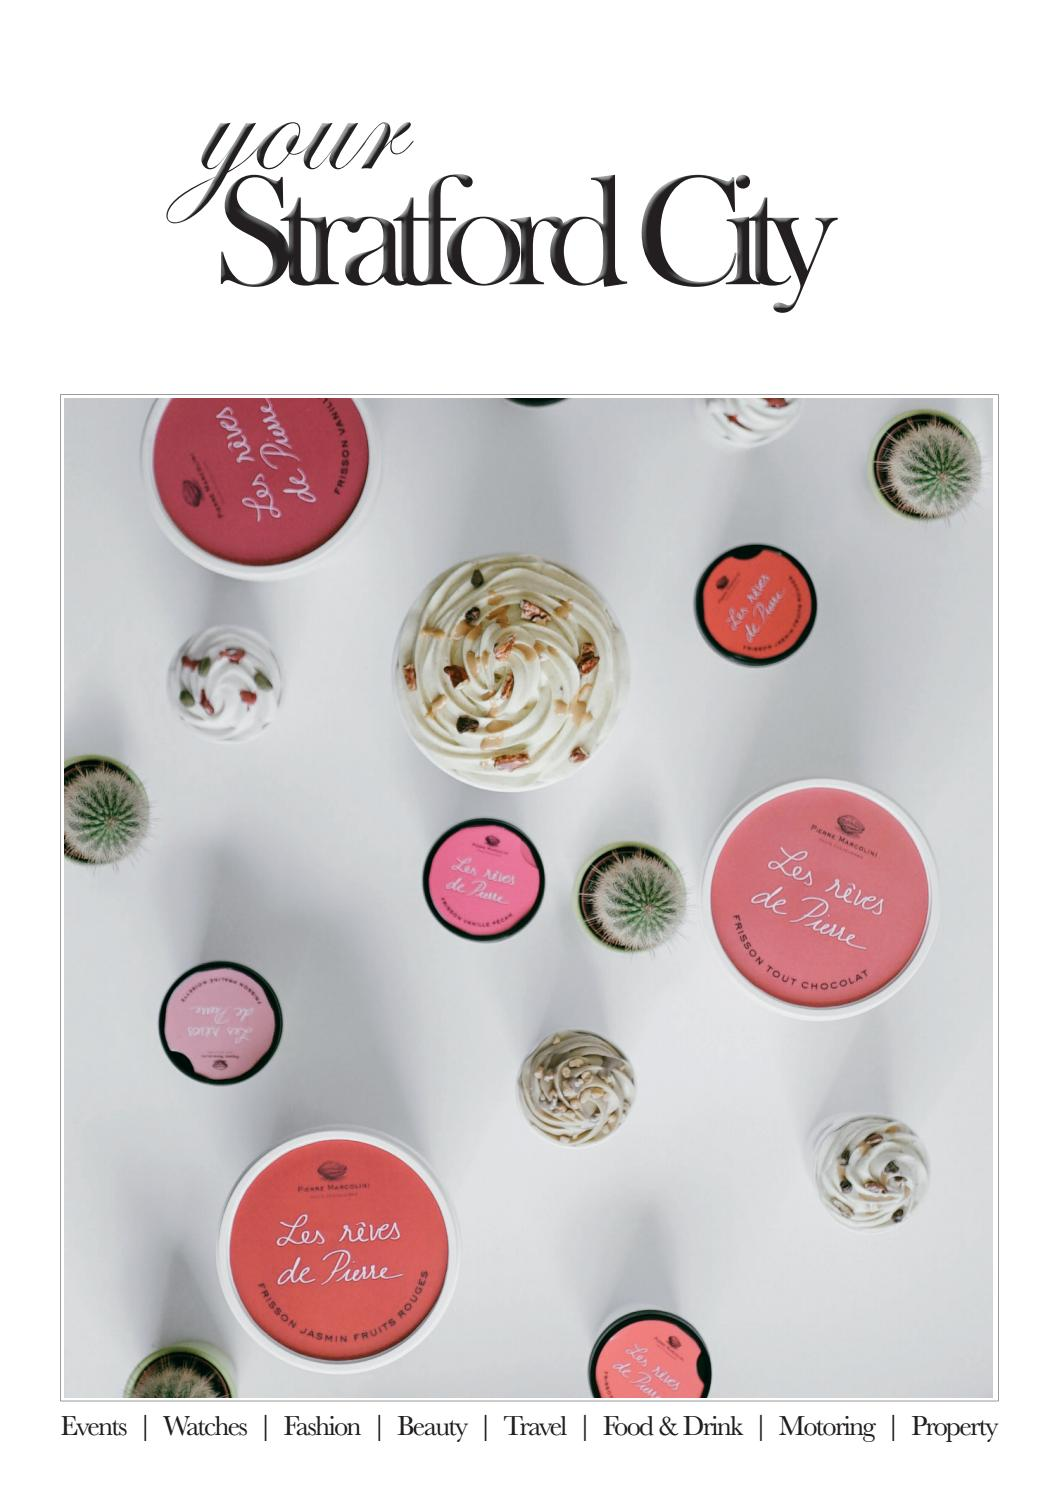 Feuille De Pierre Slate Skin your stratford cityyour media london - issuu